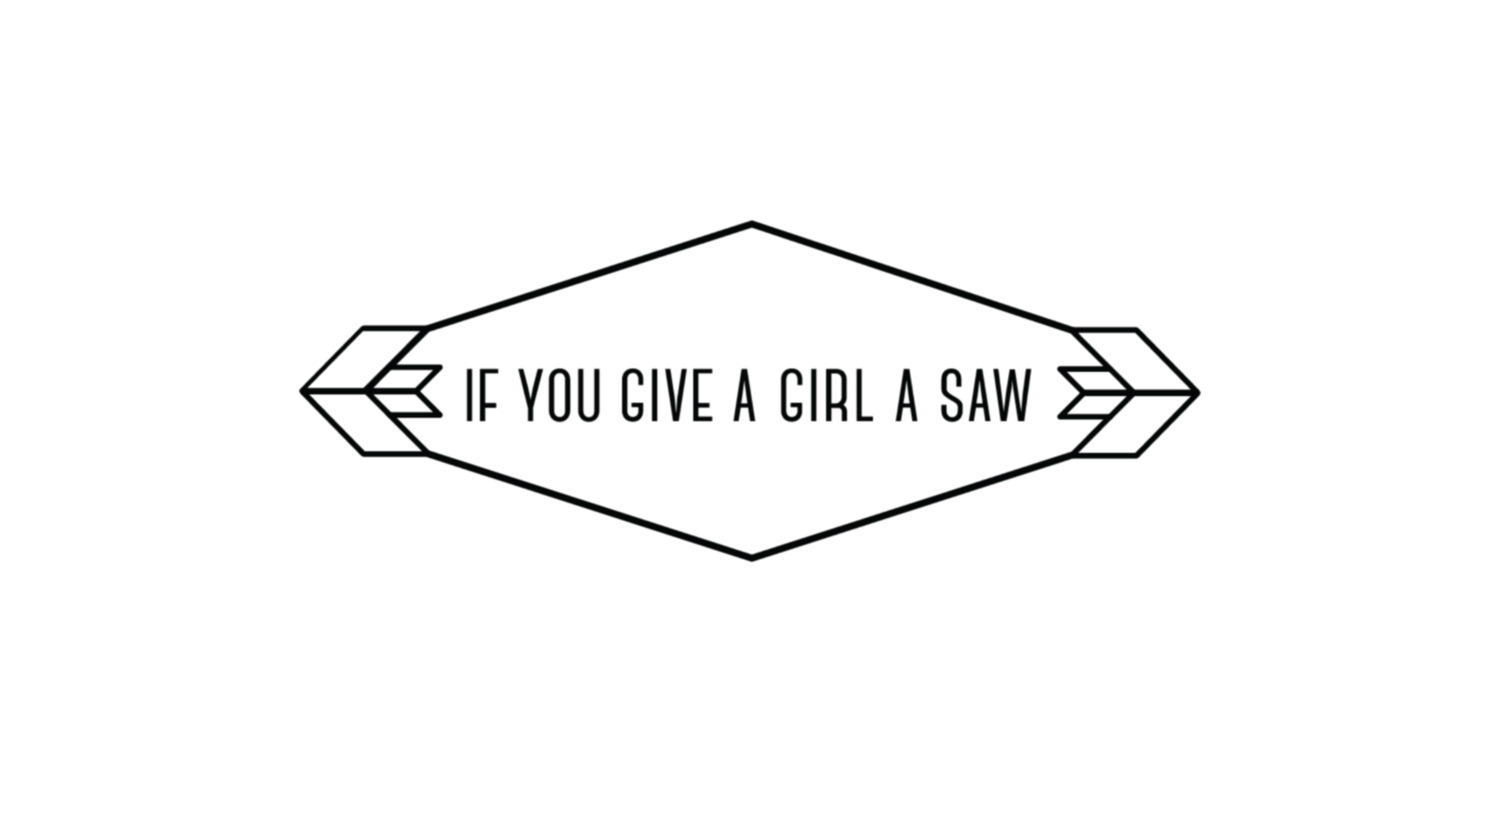 If You give a girl a saw